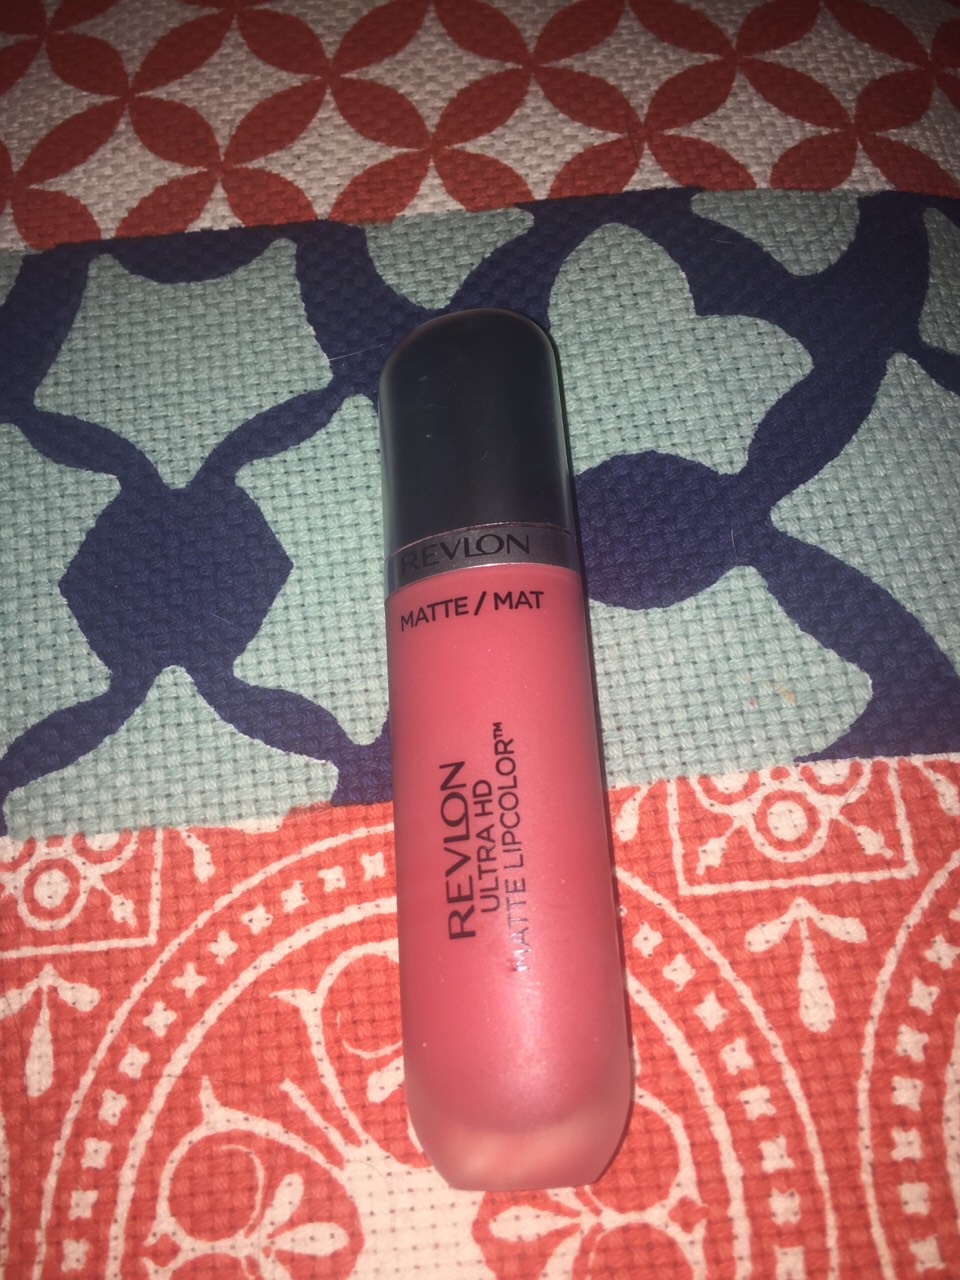 Revlon Ultra HD Matte Lipcolor($5) This product is so creamy and moisturizing. It comes in a variety of very nude colors or bold colors. It dries matte and stays in place all day. Defiantly worth it